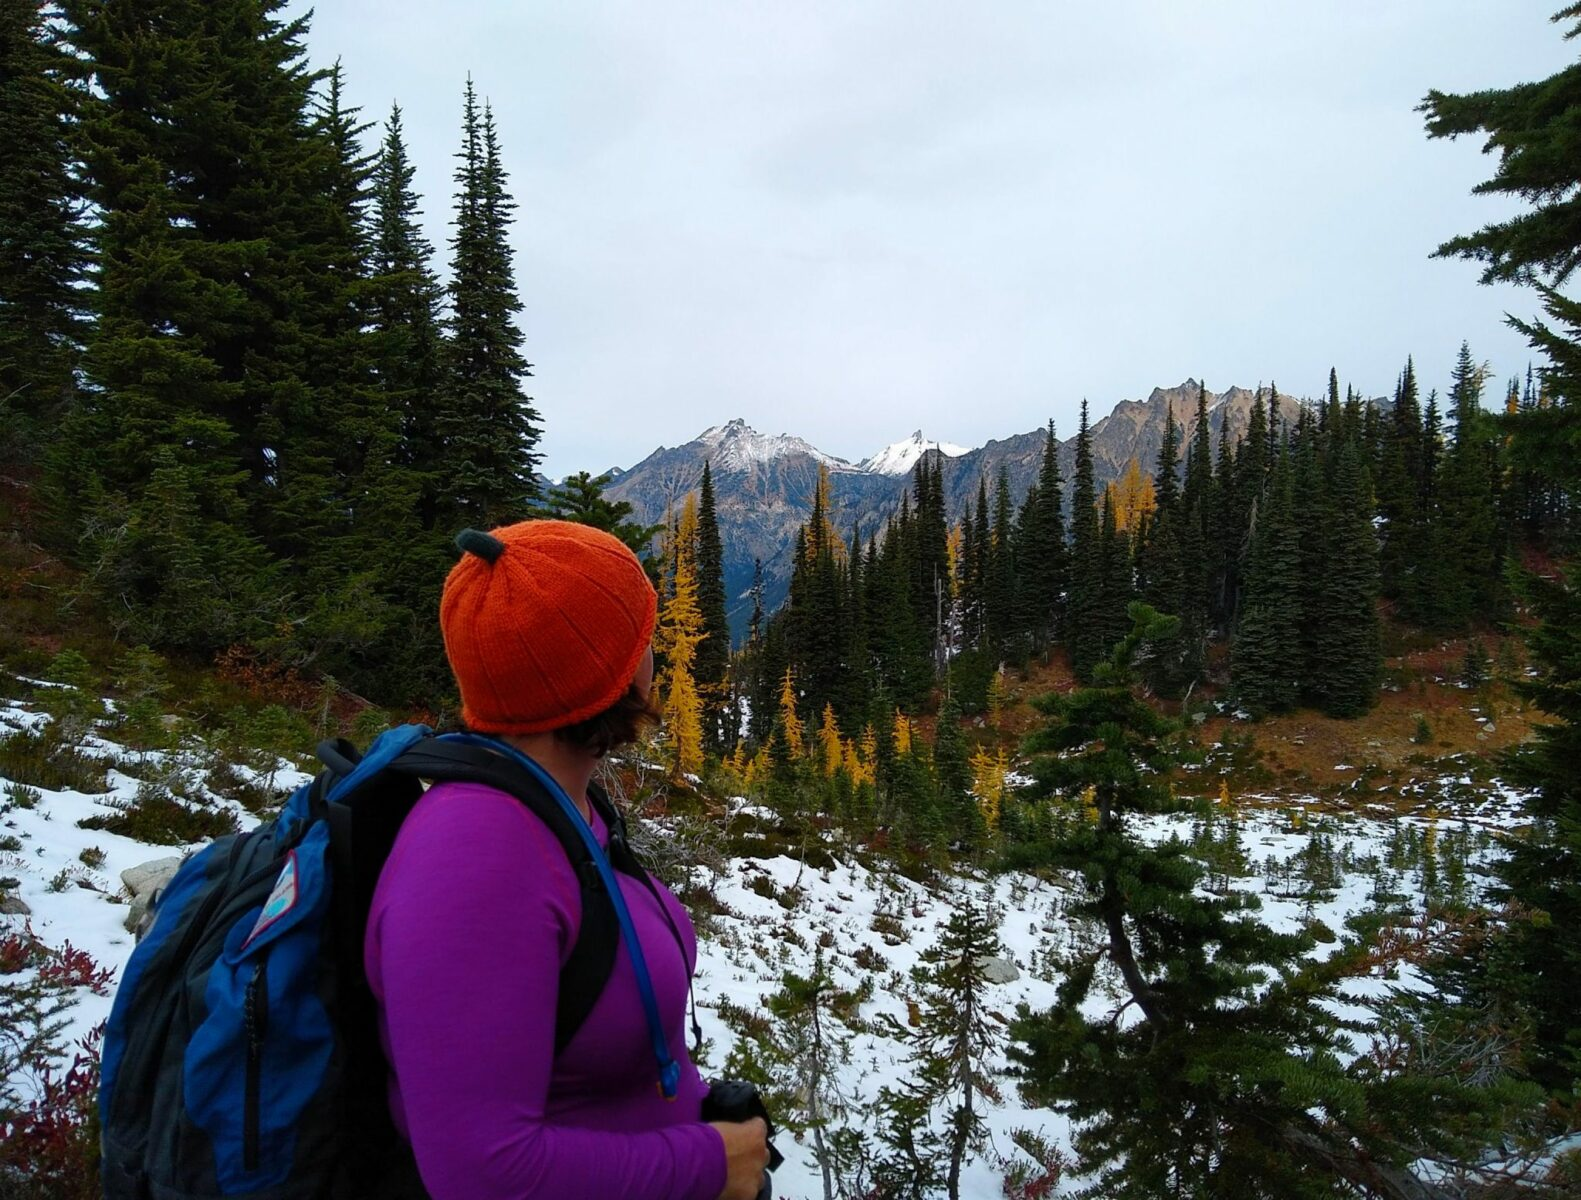 a hiker enjoys one of the best larch hikes in washington, maple pass. there is a bit of snow on the ground and a mixture of evergreen and golden larch trees in the foreground and distant mountains. The hiker is wearing an orange hat, a purple long sleeved shirt and a blue backpack